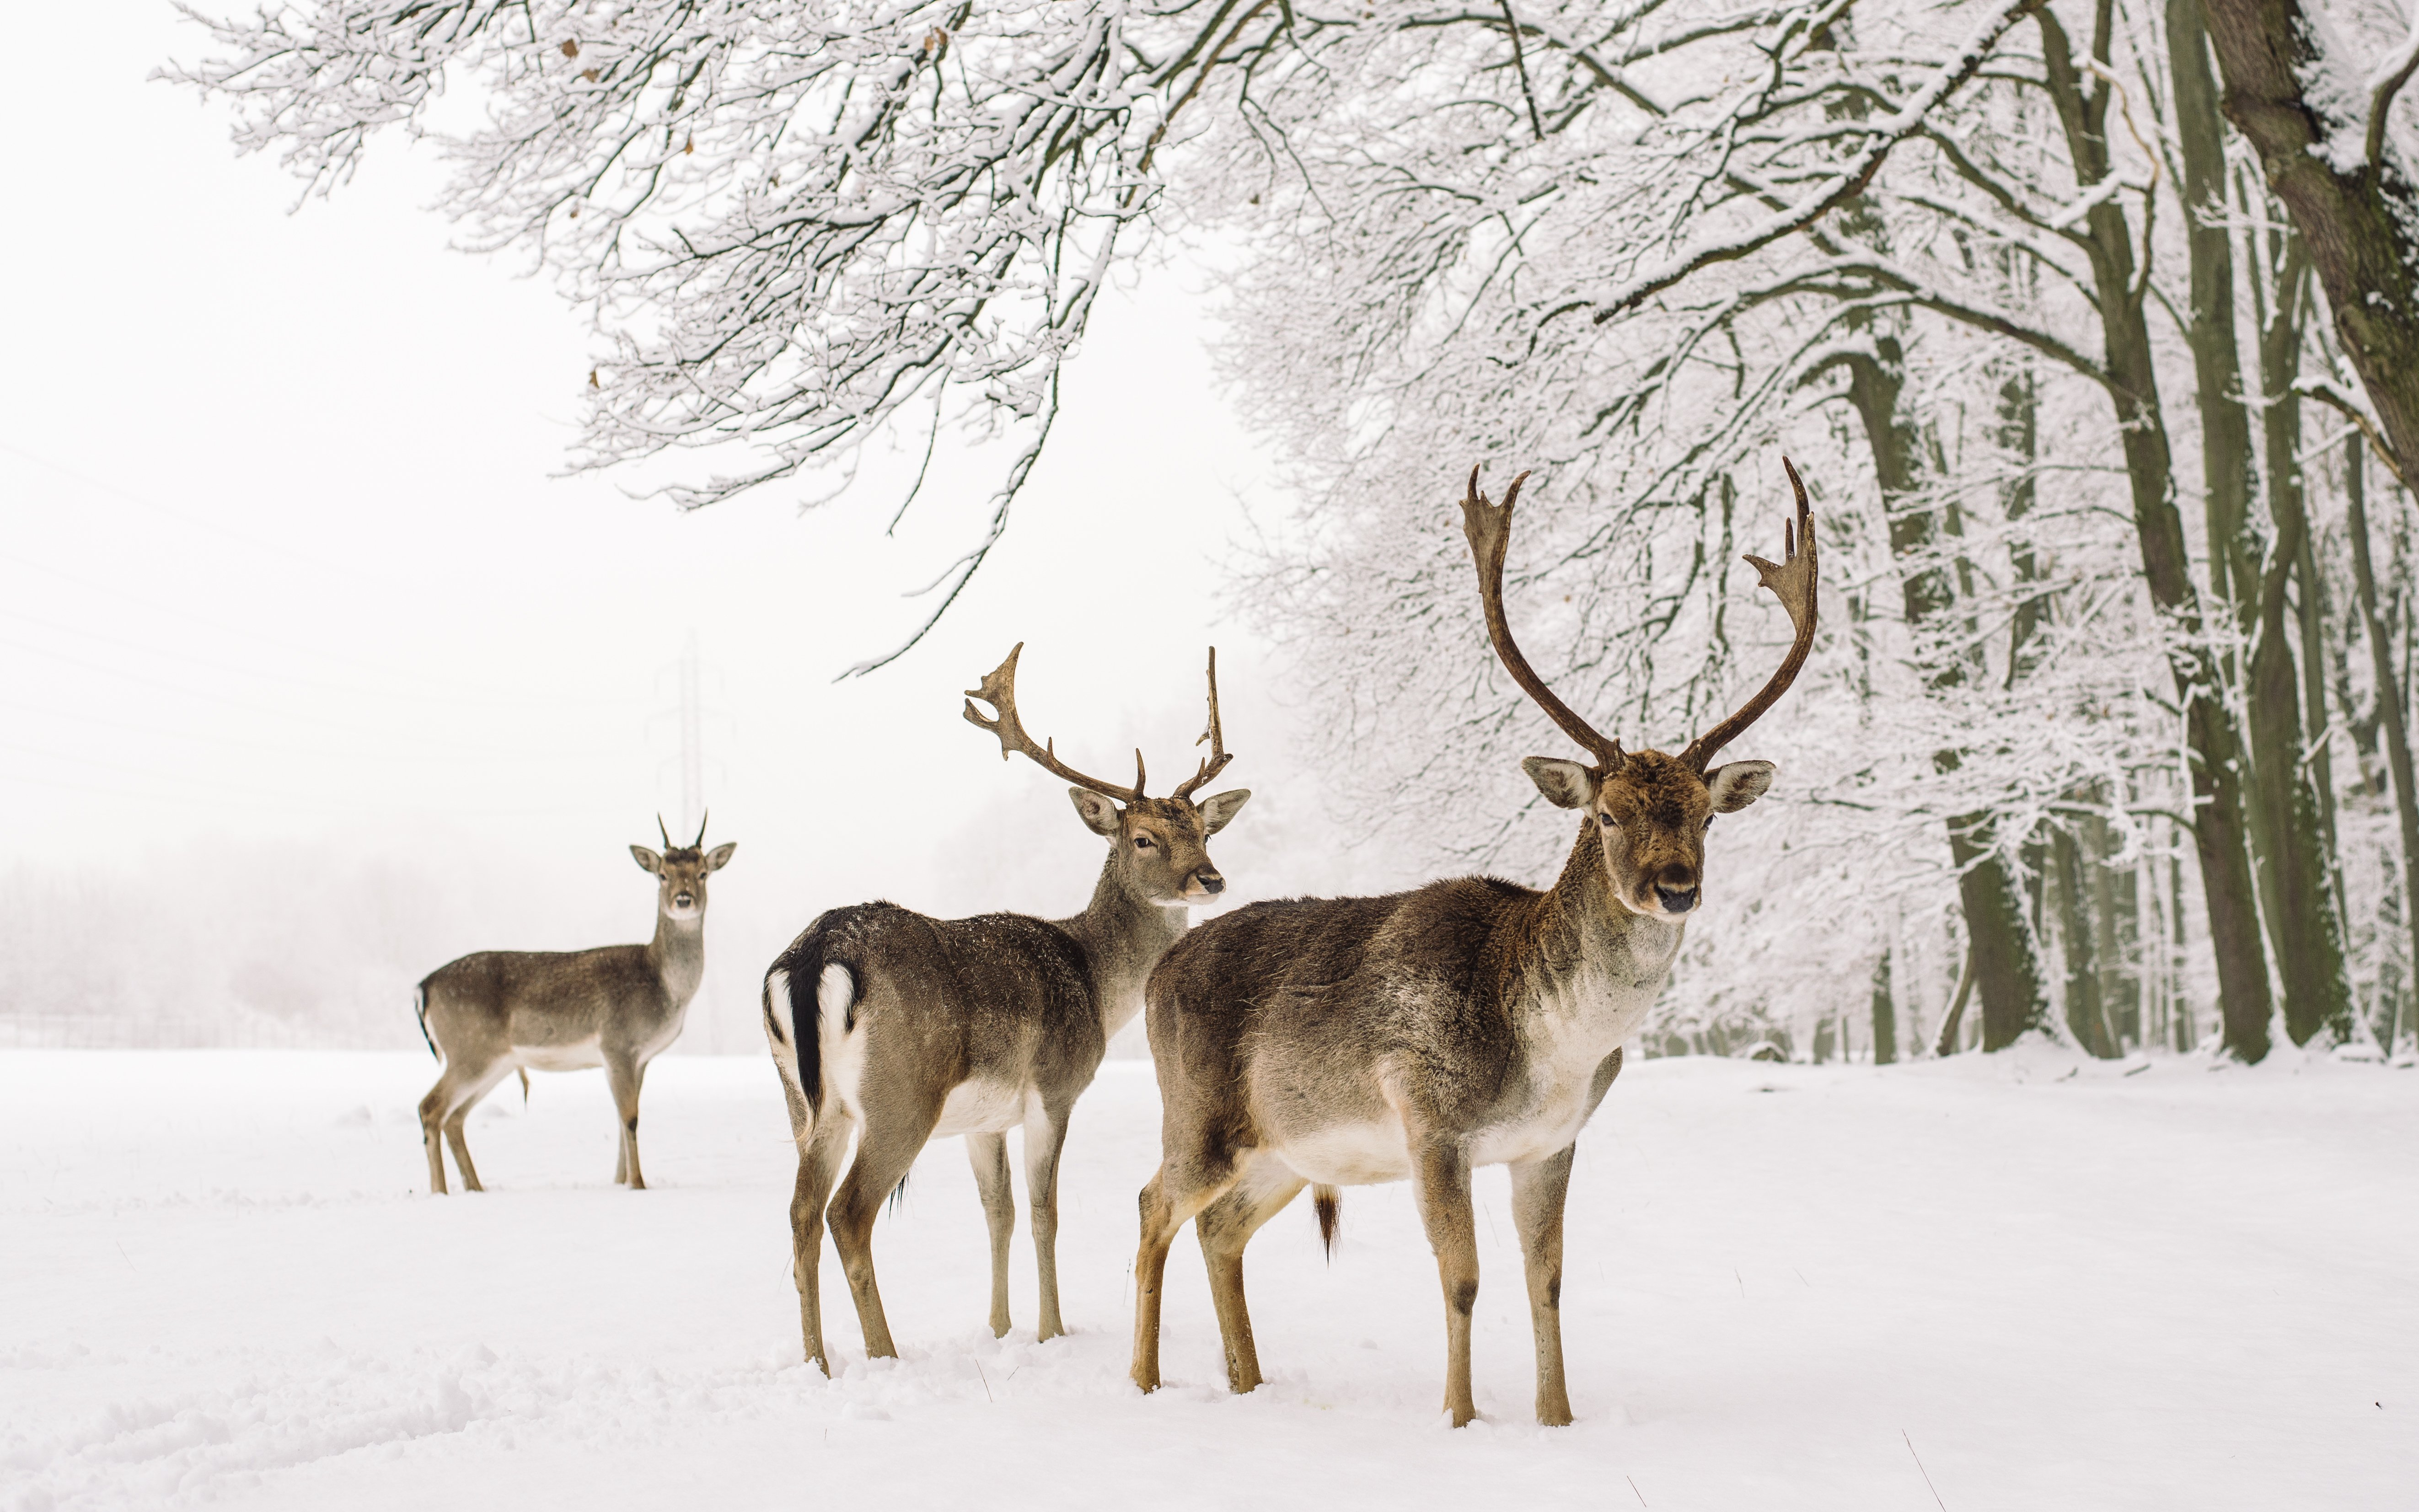 Some deer stand in the snow | Photo: Shutterstock